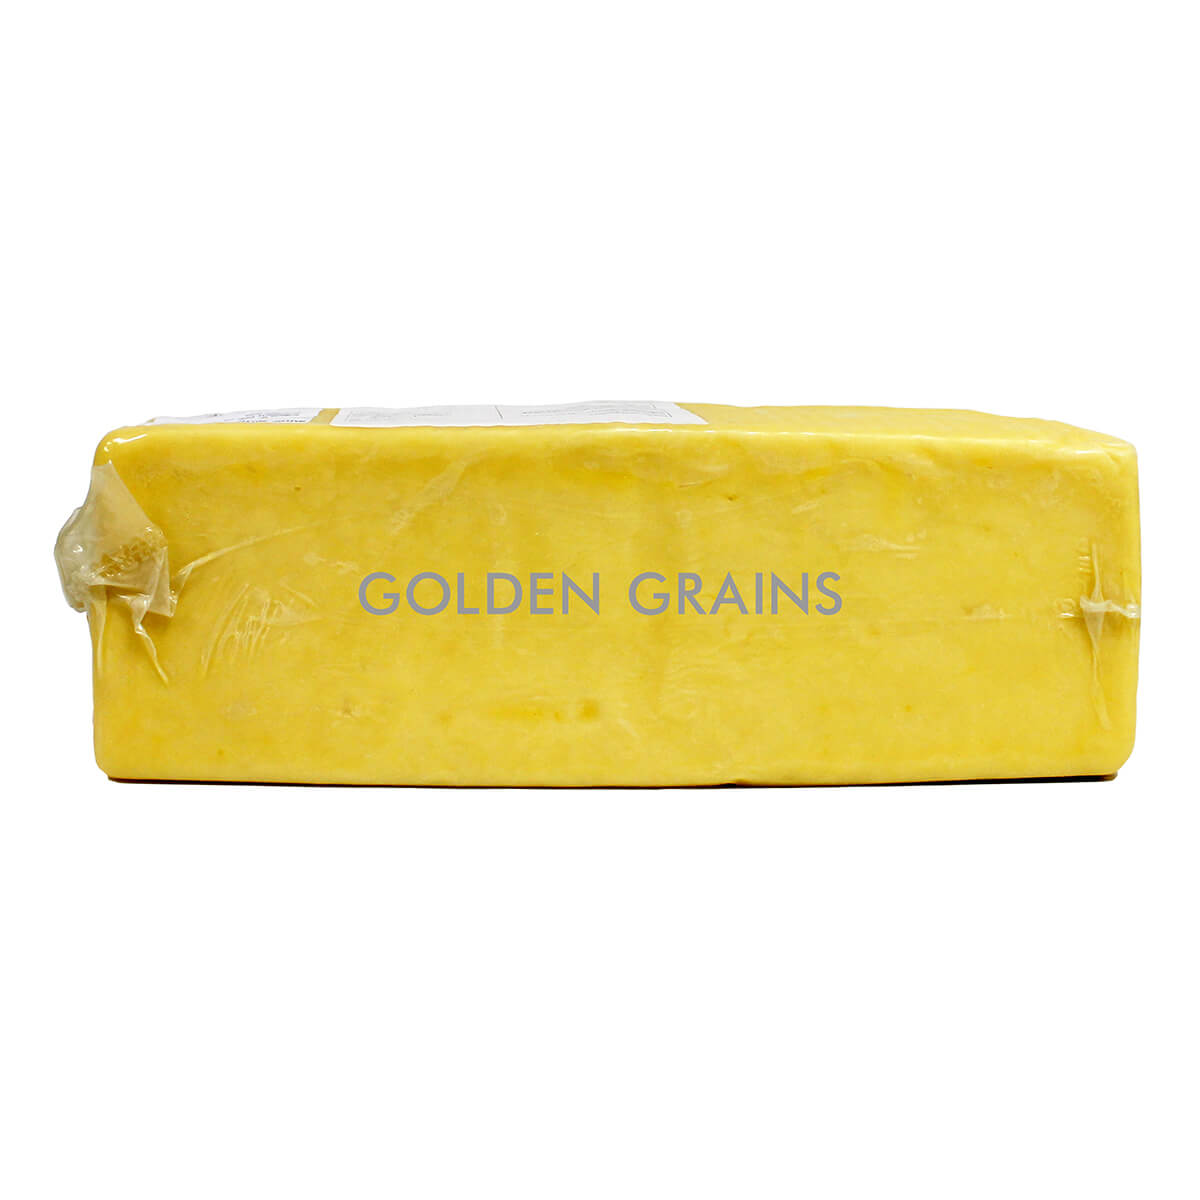 Golden Grains Dubai Export - Coombe Castle - Mature Cheddar Small - Side.jpg